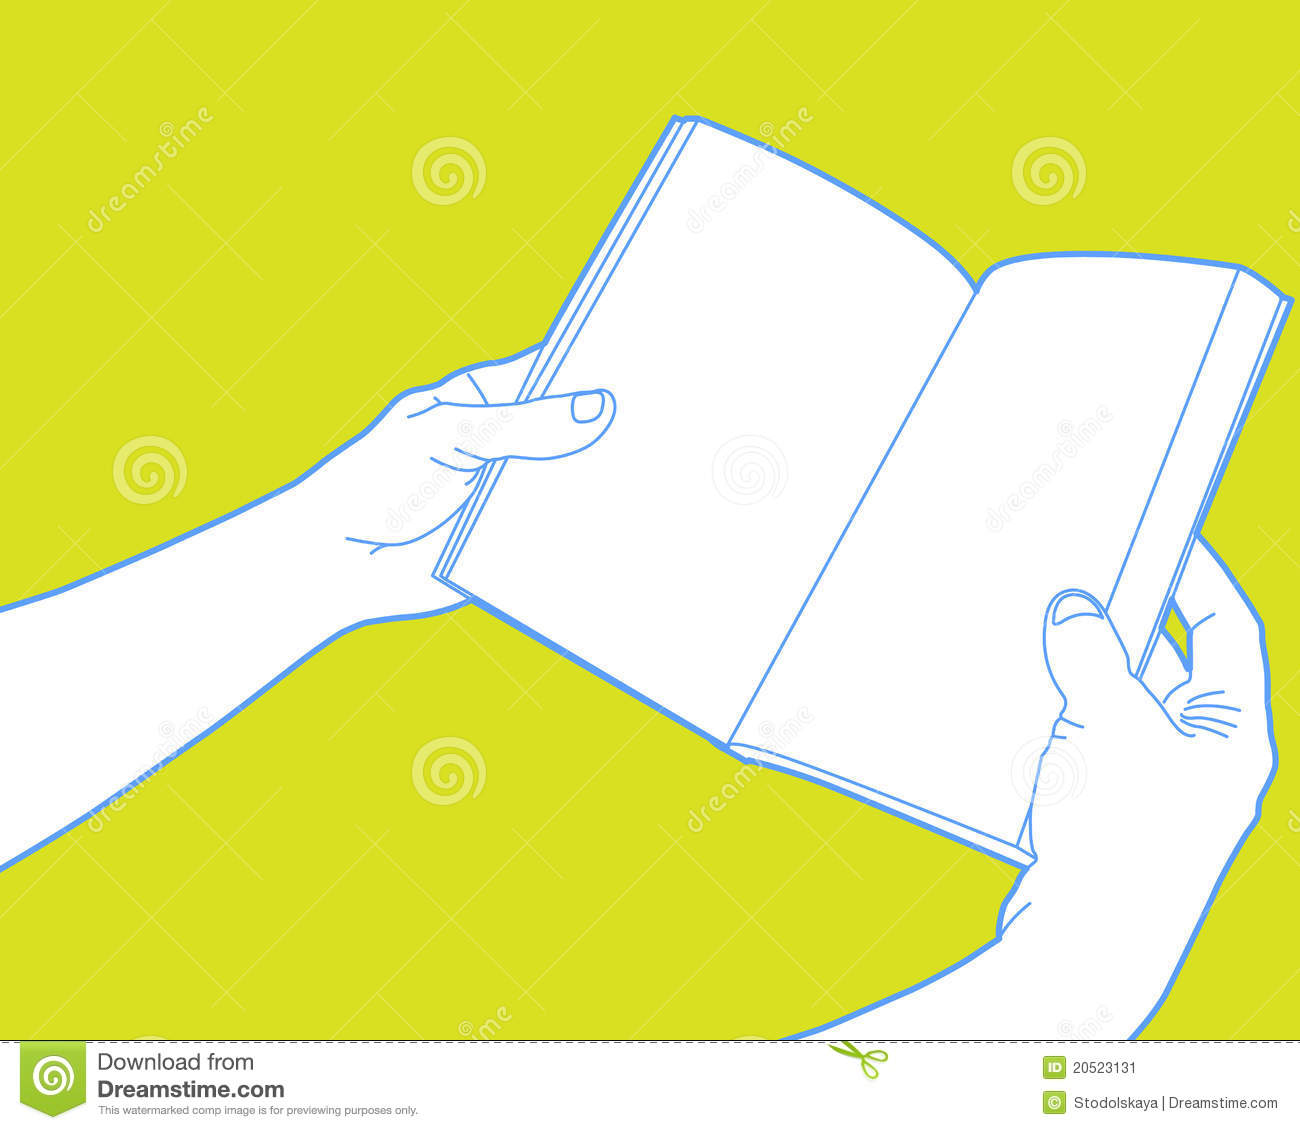 Clipart open book in hands clipart free stock Hands Holding Open Book Stock Illustrations – 177 Hands Holding ... clipart free stock